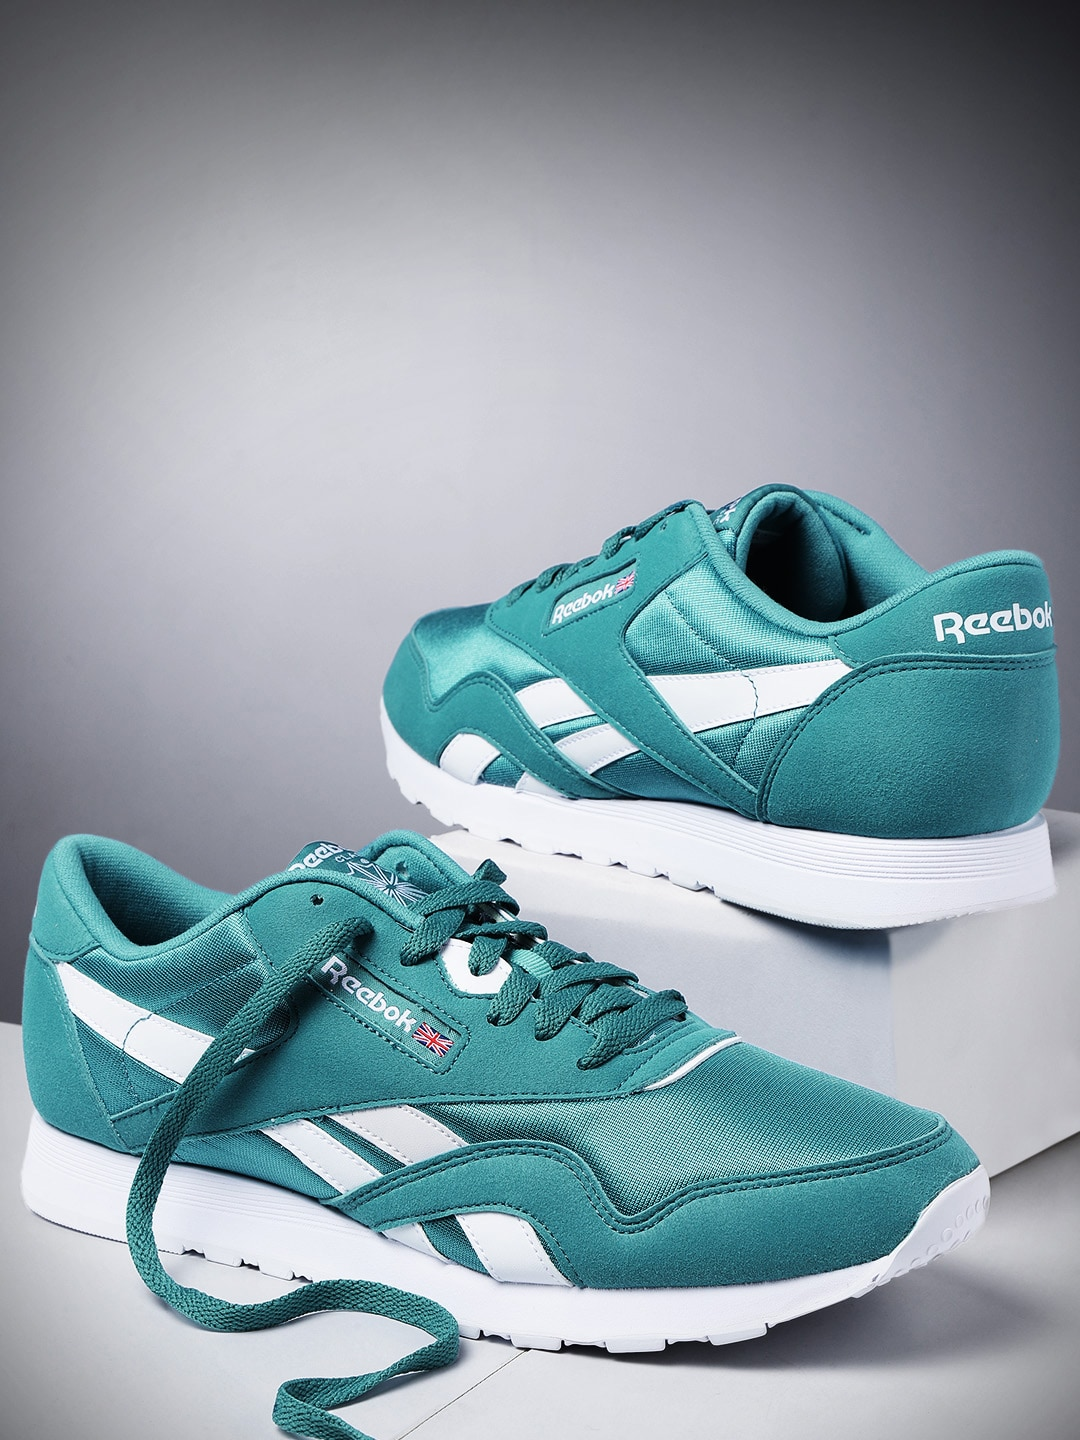 7326779ad80 Reebok Classic Shoes - Buy Reebok Classic Shoes online in India